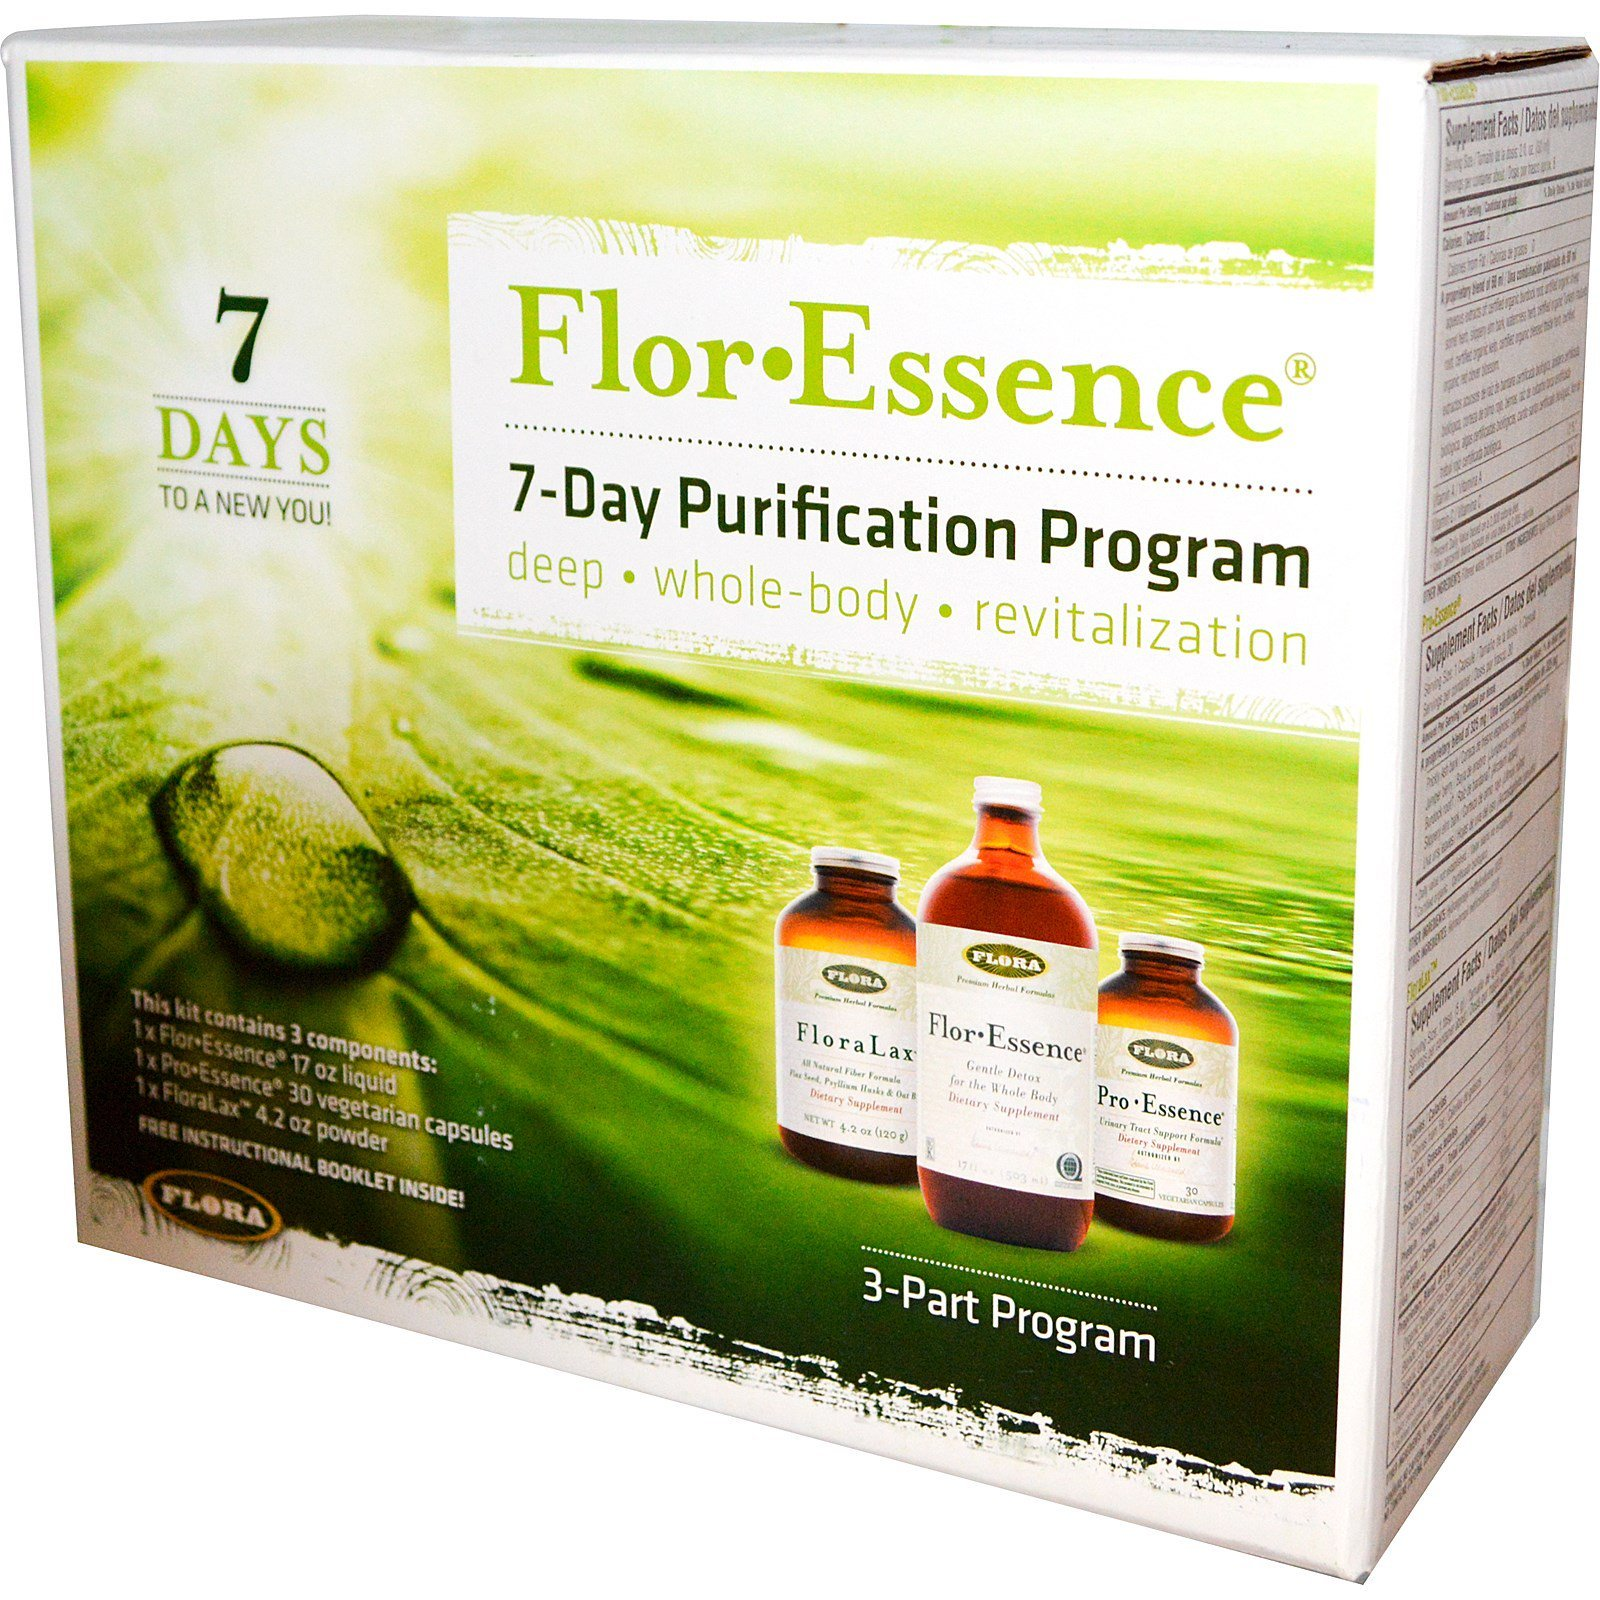 Flor Essence 7 Day Complete Body Detox Cleanse Kit Organic Non Gmo Buy Online In Botswana Flora Products In Botswana See Prices Reviews And Free Delivery Over P700 Desertcart